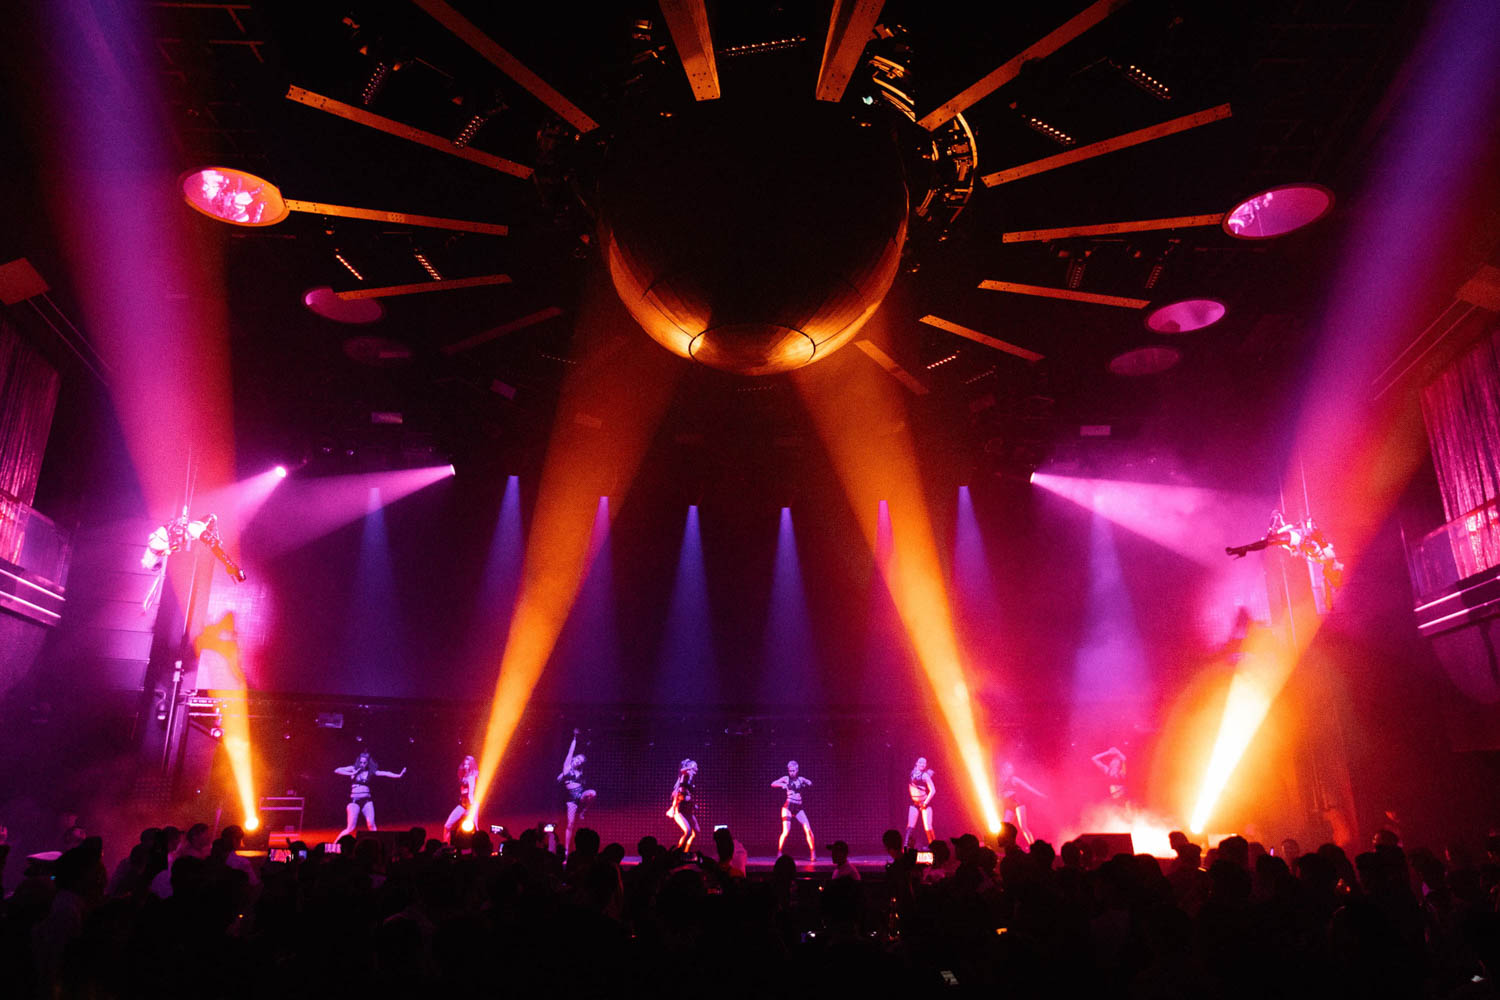 CLUB CHROMA at PARADISE CITY - In an aerial harness performance to accompany world renowned DJ, Paul Van Dyk